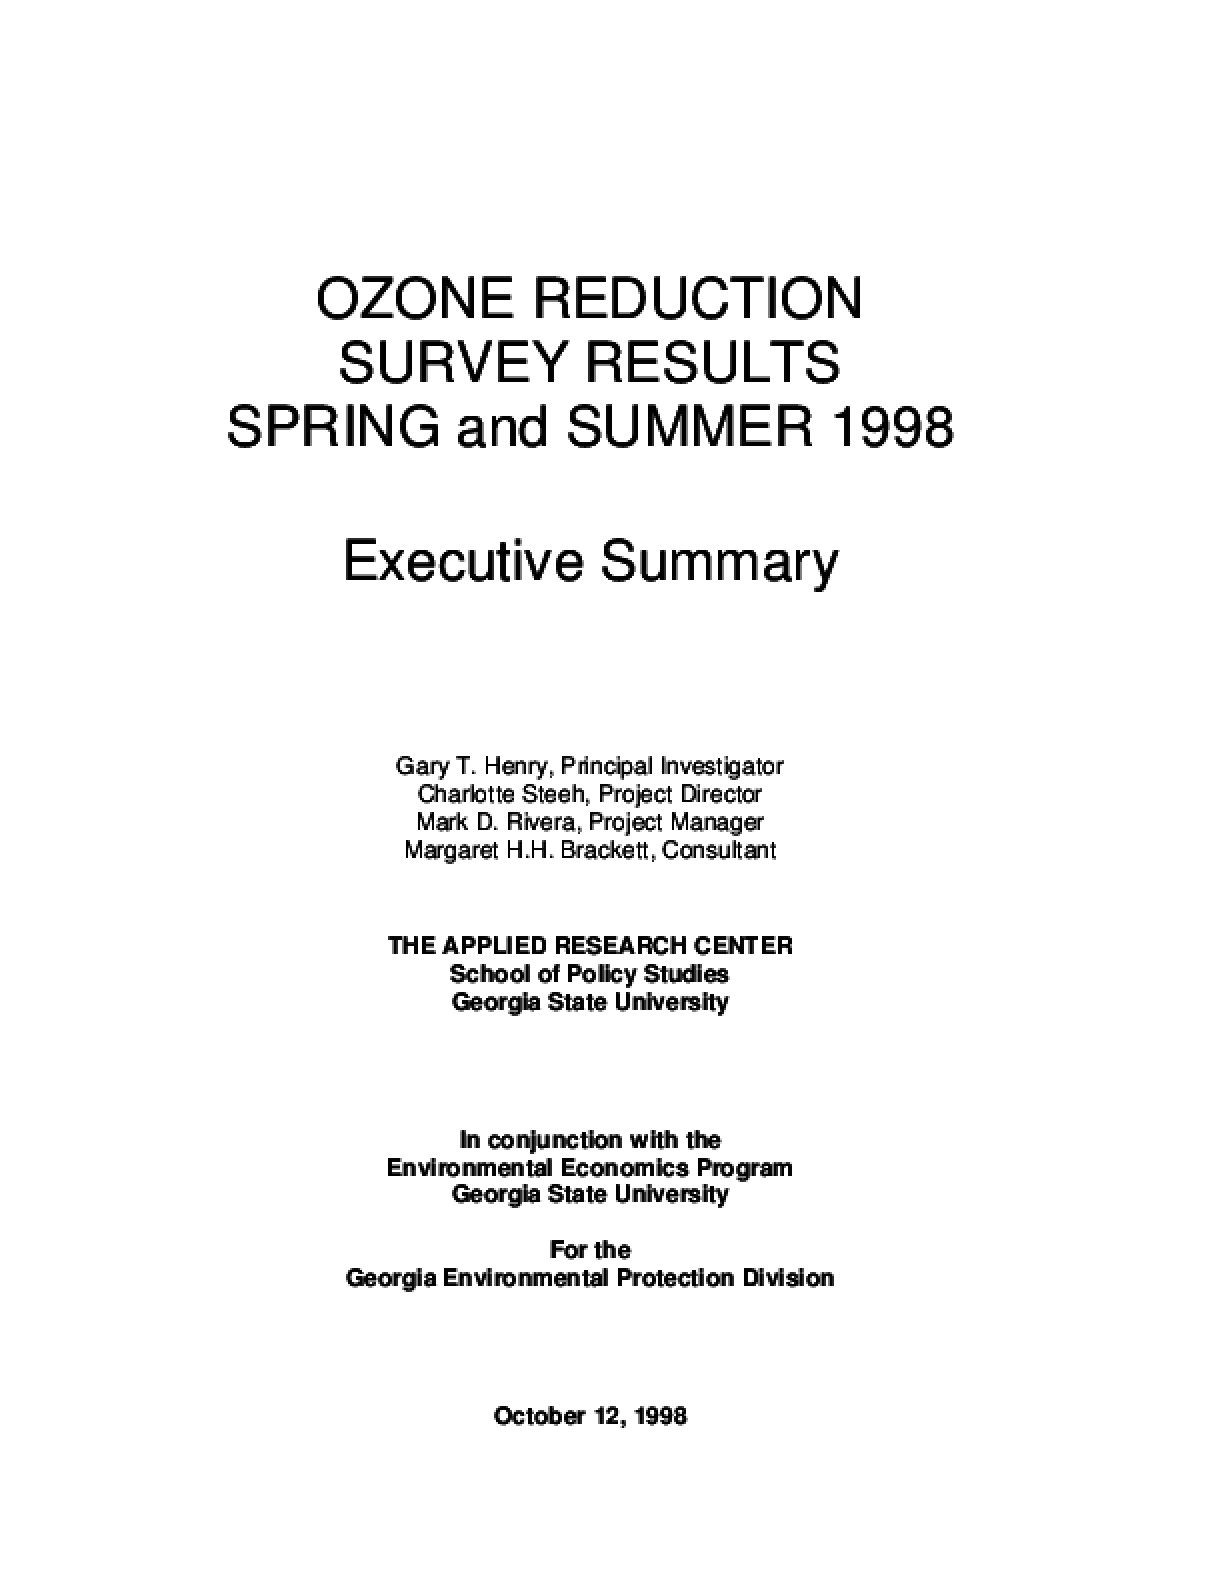 Ozone Reduction Survey Results: The Spring & Summer 98 Executive Summary